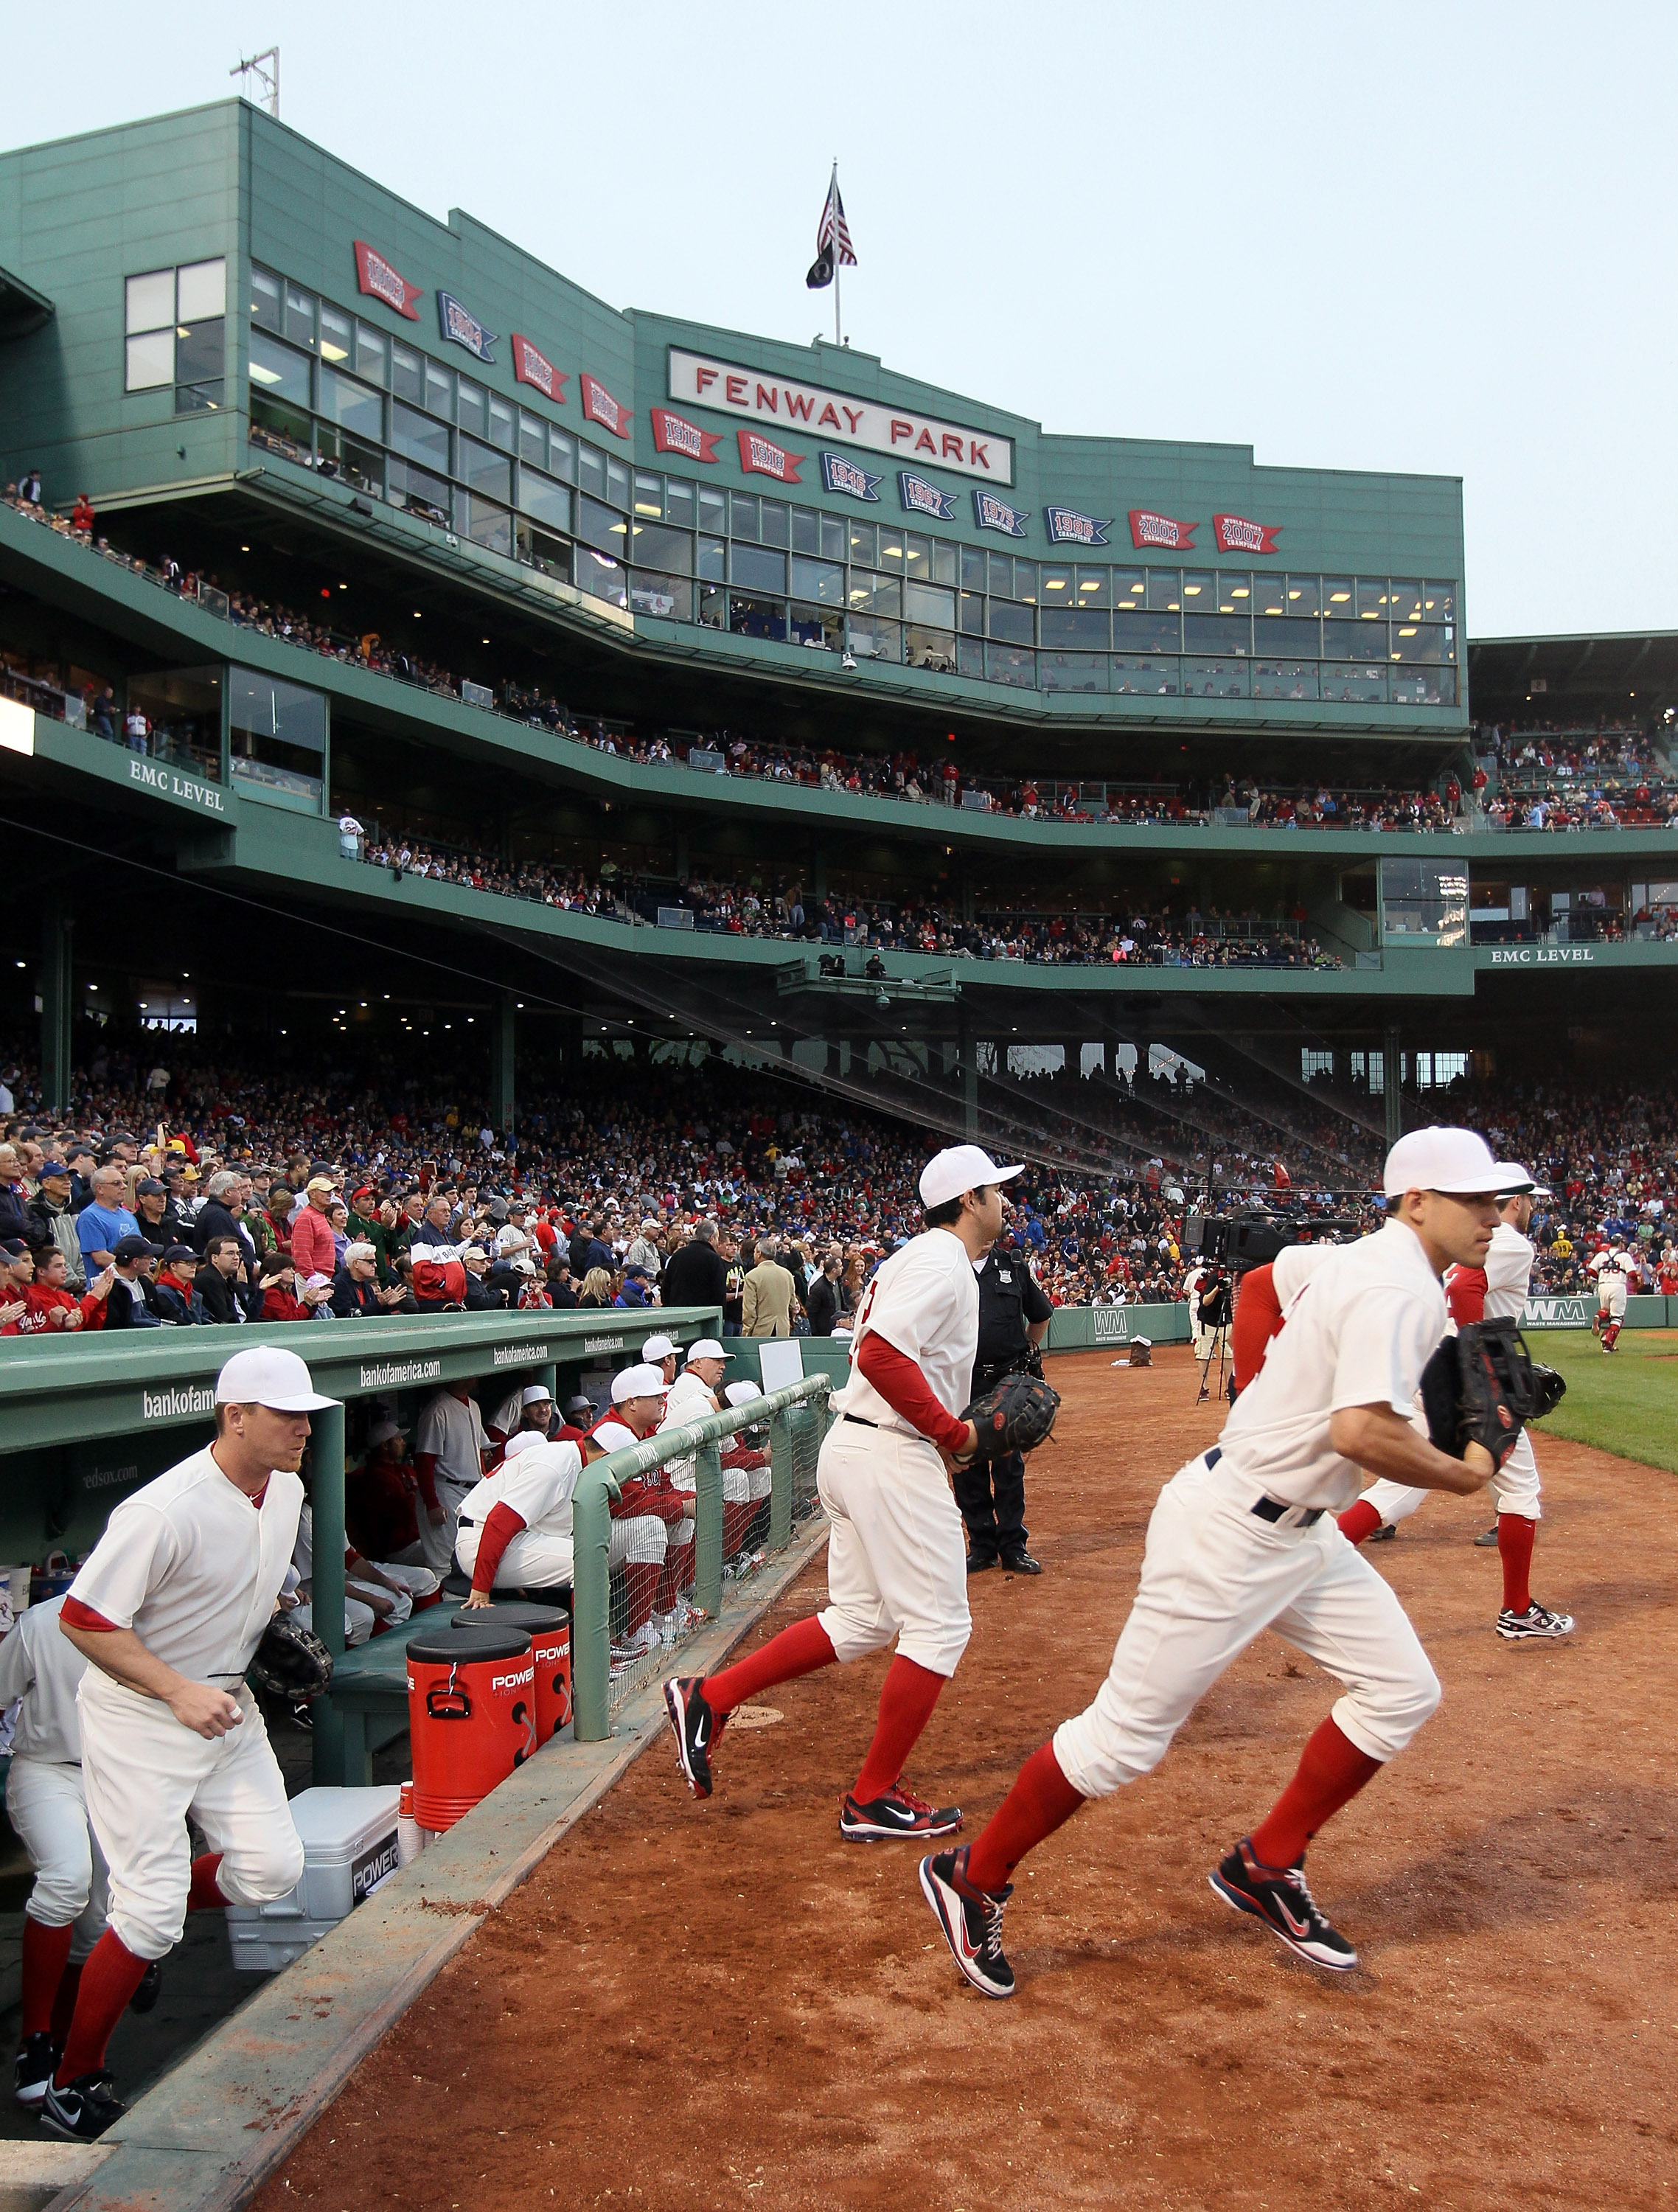 BOSTON, MA - MAY 21:  The Boston Red Sox take the field for the game against the Chicago Cubs on May 21, 2011 at Fenway Park in Boston, Massachusetts. Tonight the Chicago Cubs and the Boston Red Sox are wearing replica uniforms from 1918. Before this seri